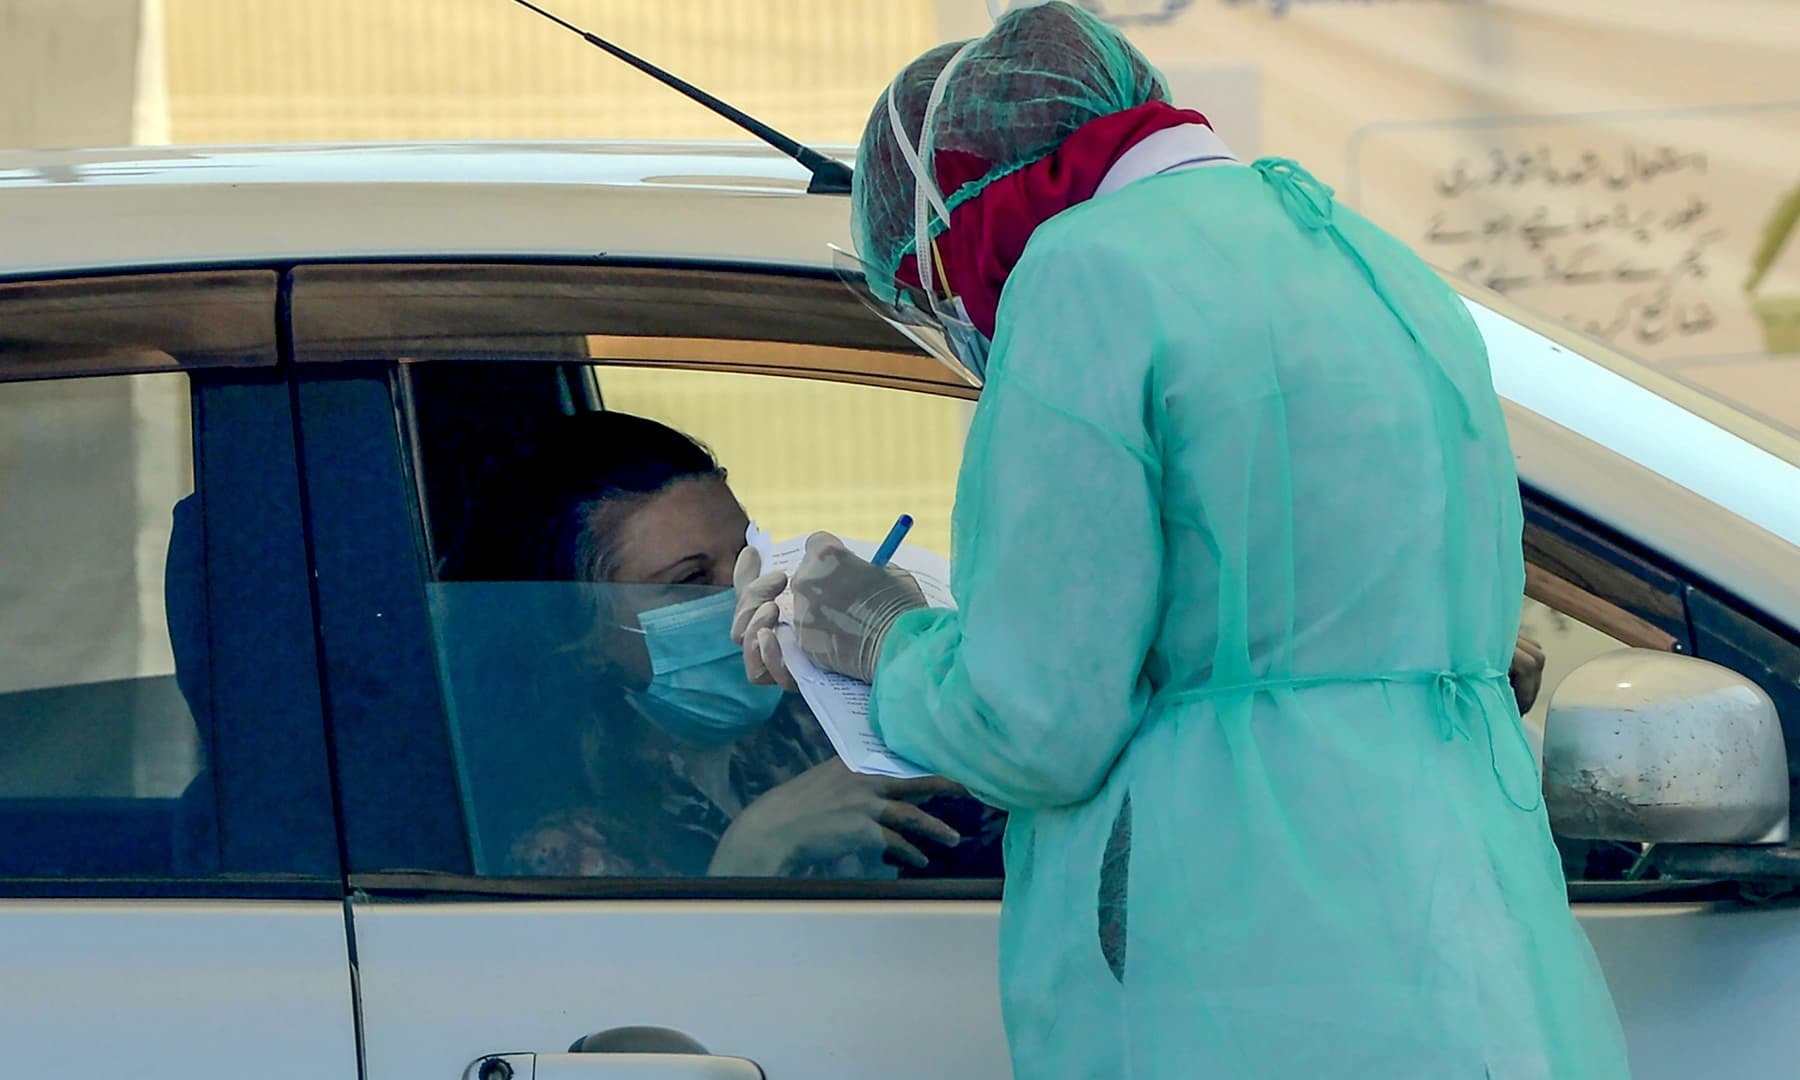 A medical staff member wearing protective gear takes information from a resident sitting in a car for a coronavirus test at a drive-through screening and testing facility point during a government-imposed nationwide lockdown as a preventive measure against the COVID-19 coronavirus, at the port city of Karachi on April 4, 2020. - The first drive-through coronavirus testing facility has been established by the Sindh provincial government at Karachi which will enable suspected coronavirus patients to get themselves te